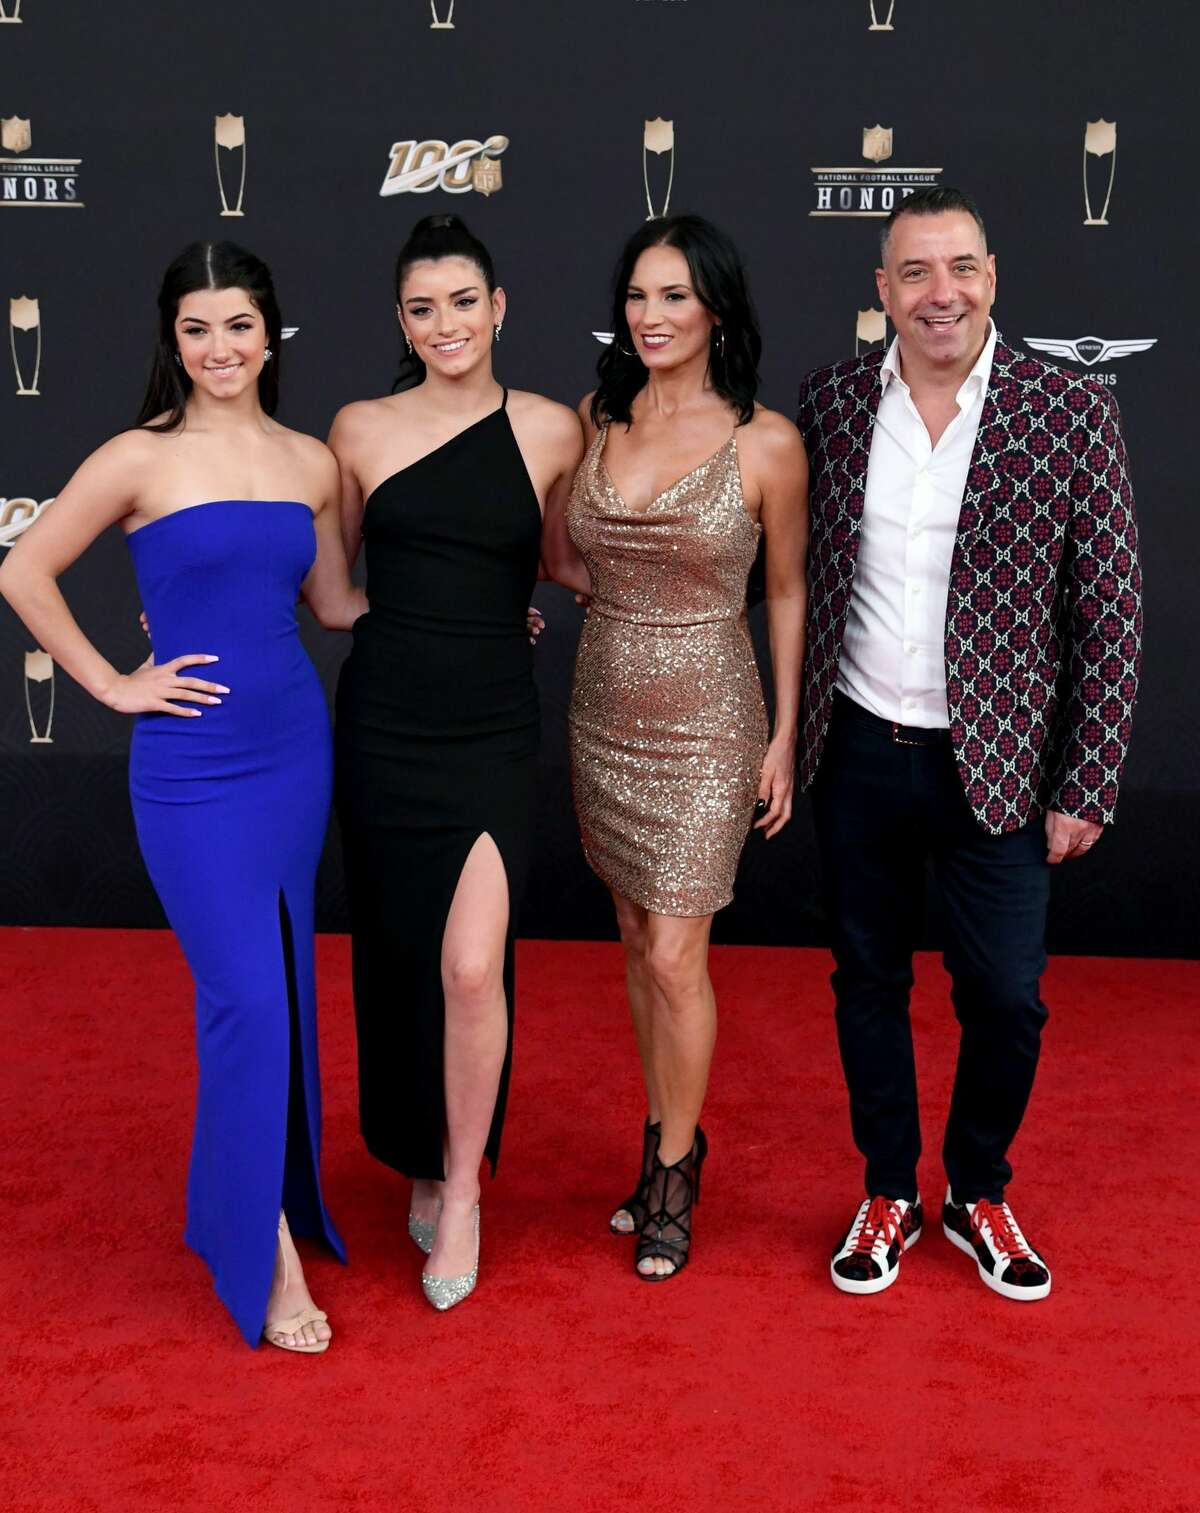 Charli D'Amelio, Dixie D'Amelio, Heidi D'Amelio, and Marc D'Amelio attend the 9th Annual NFL Honors at Adrienne Arsht Center on February 01, 2020 in Miami, Florida. Dixie, the eldest sister, sent out some tweets alluding to the backlash including on that said